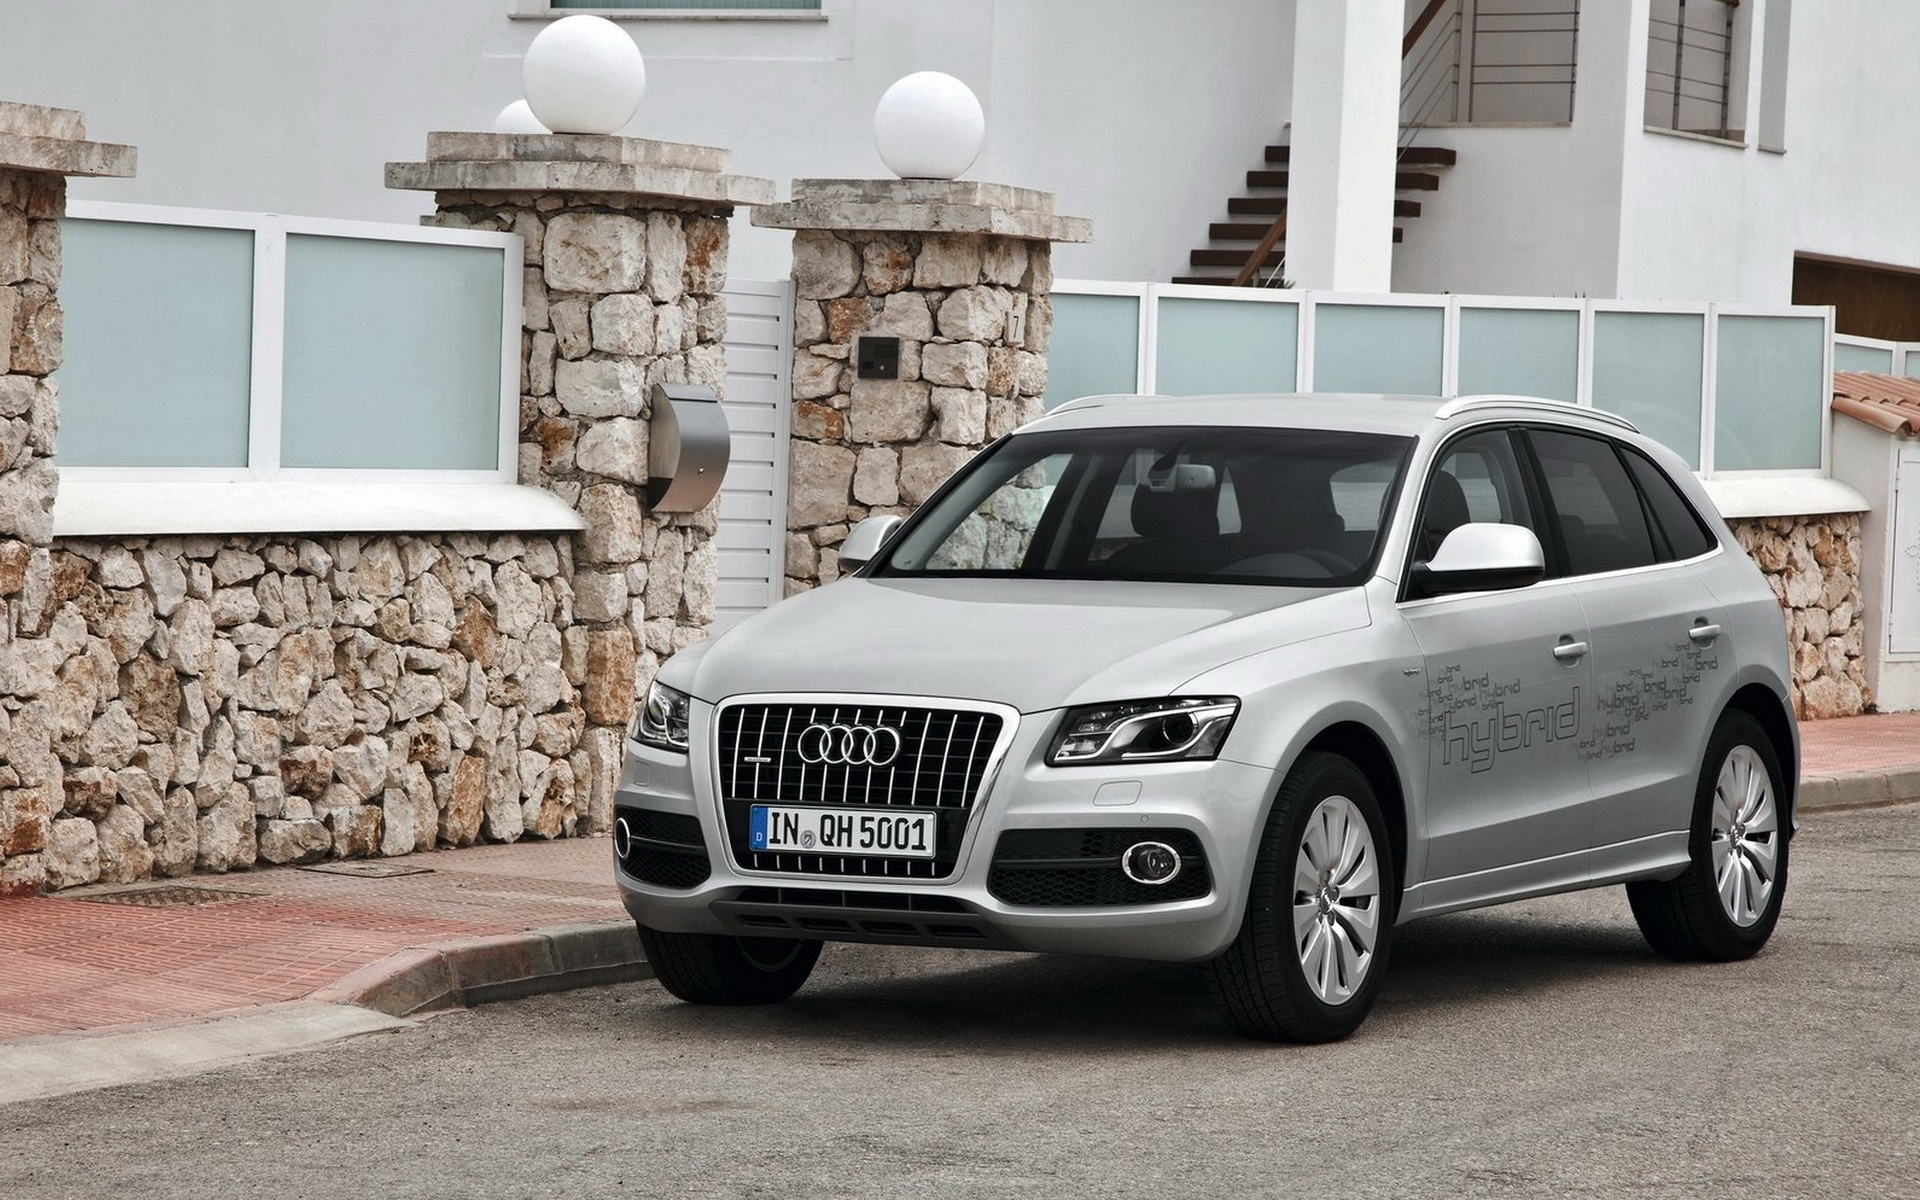 1920x1200 - Audi Q5 Wallpapers 29